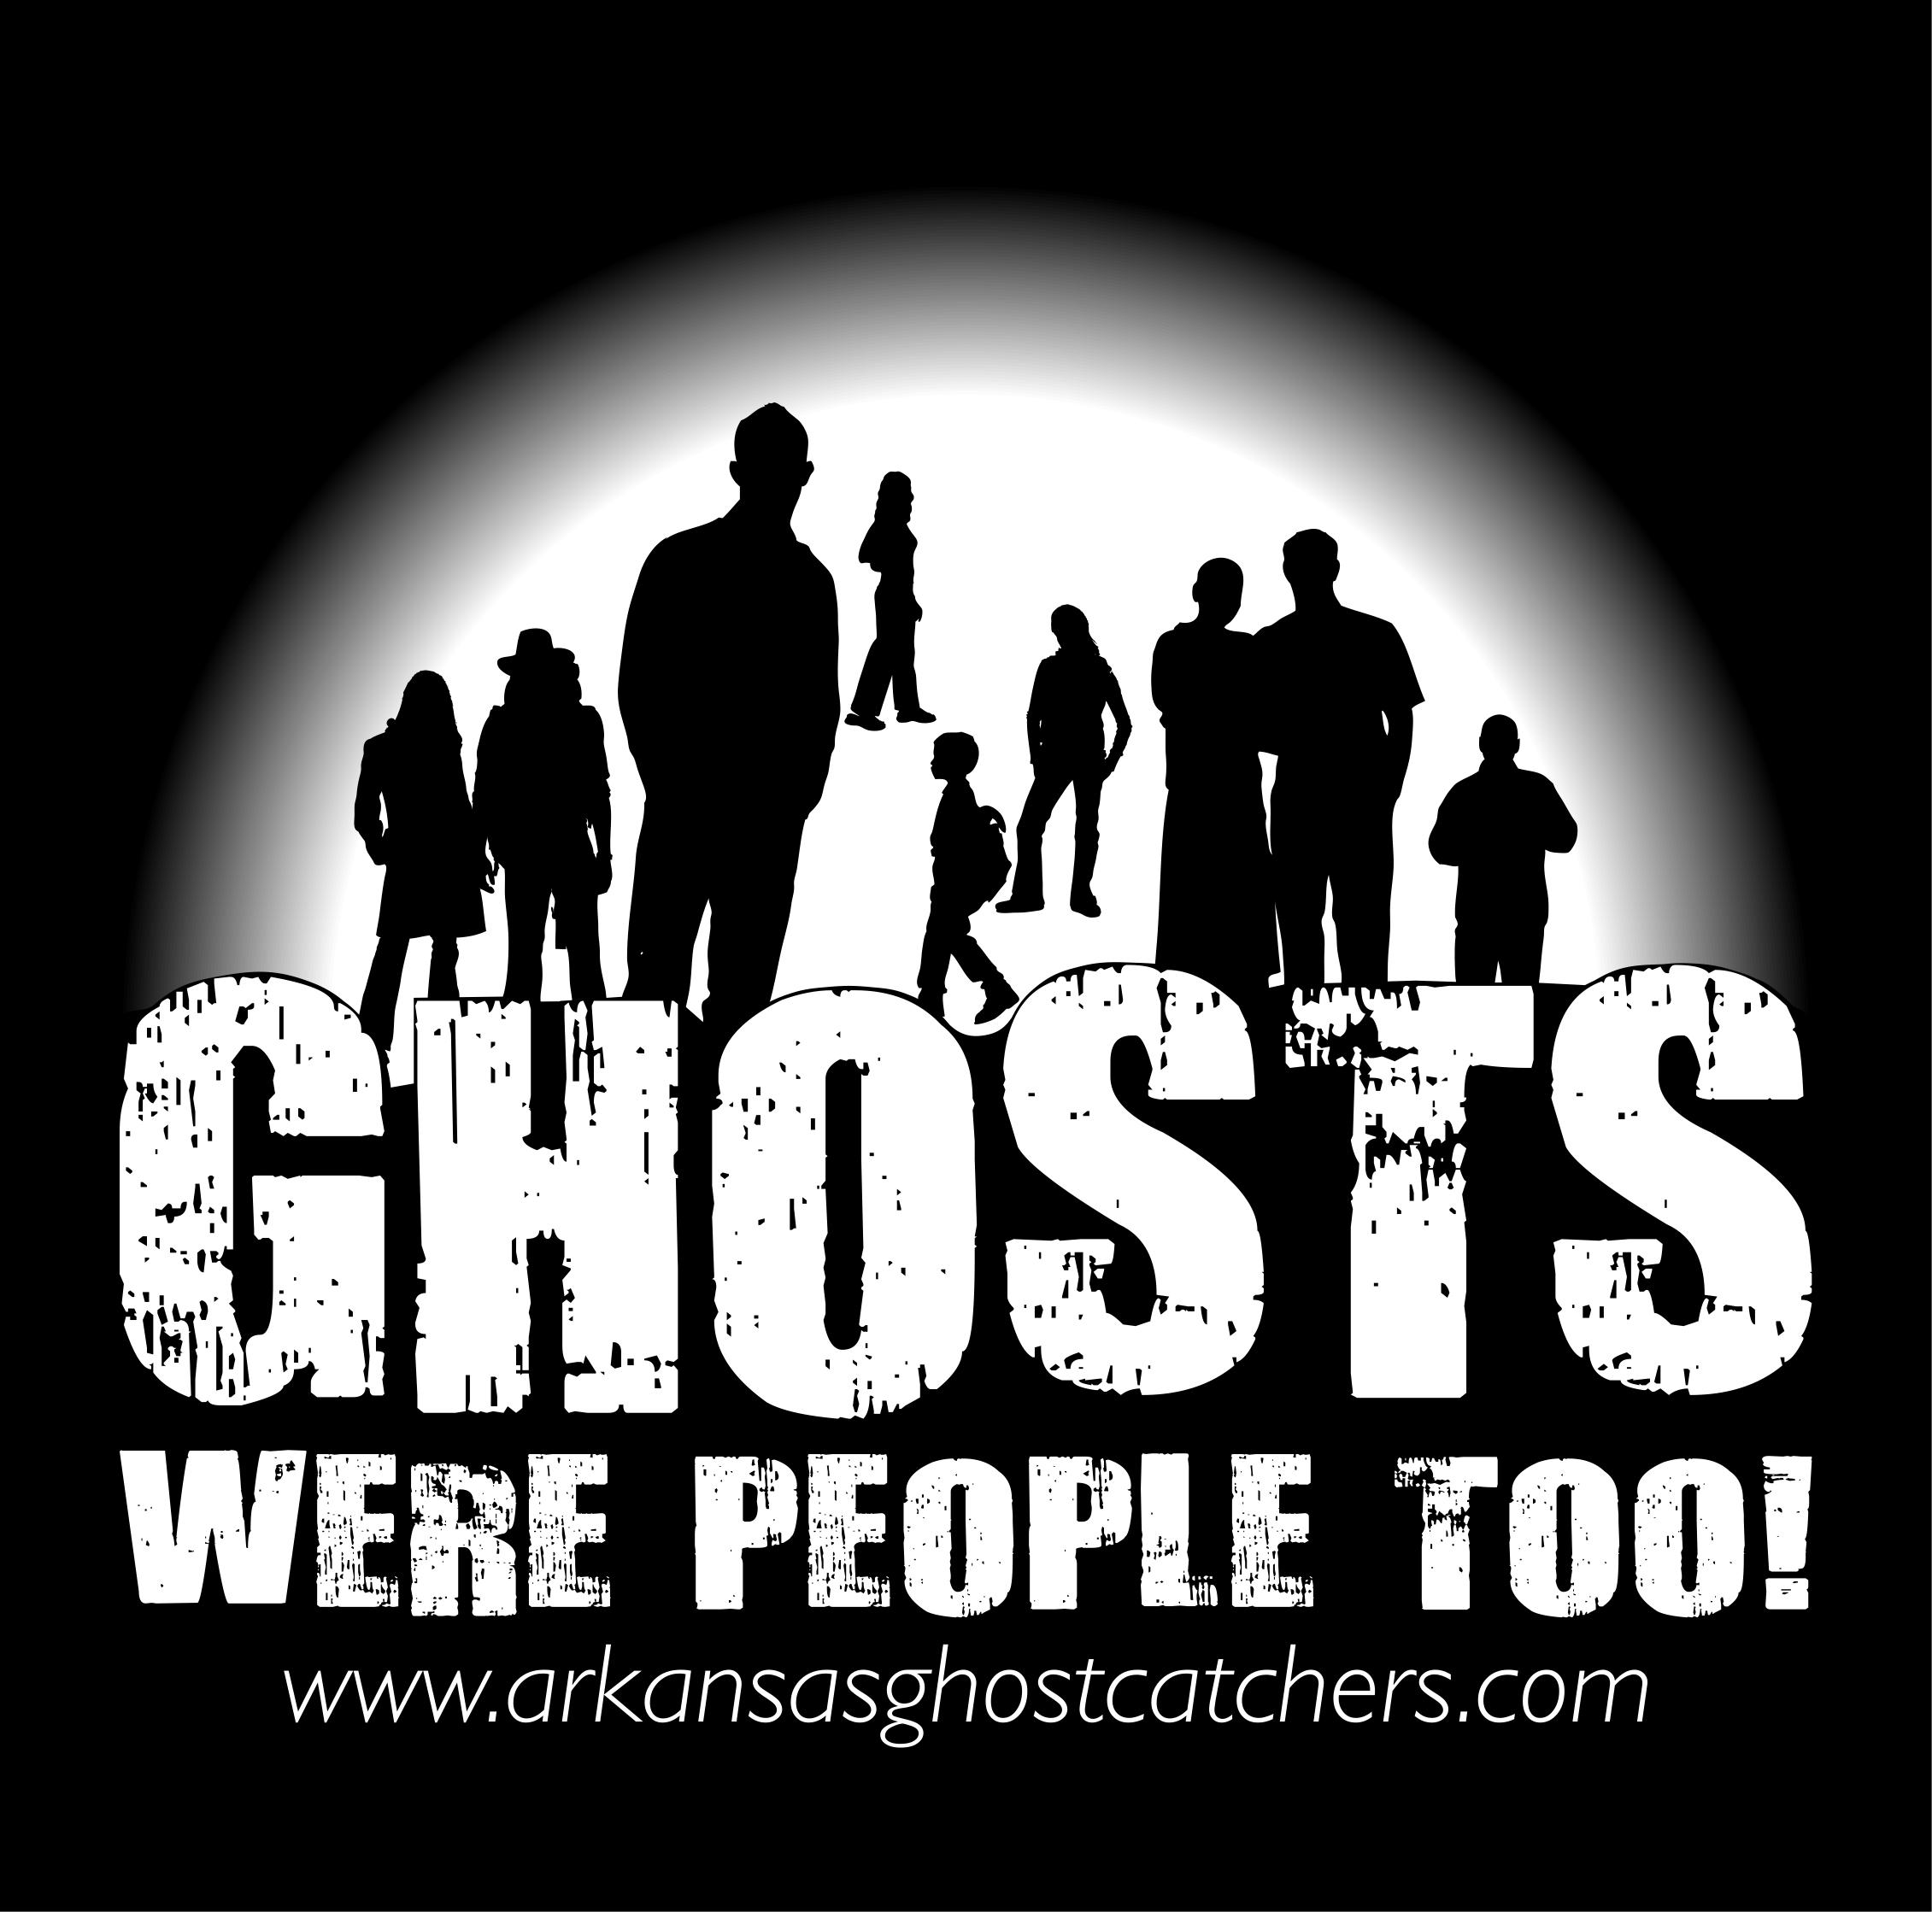 Arkansas Ghost Catchers